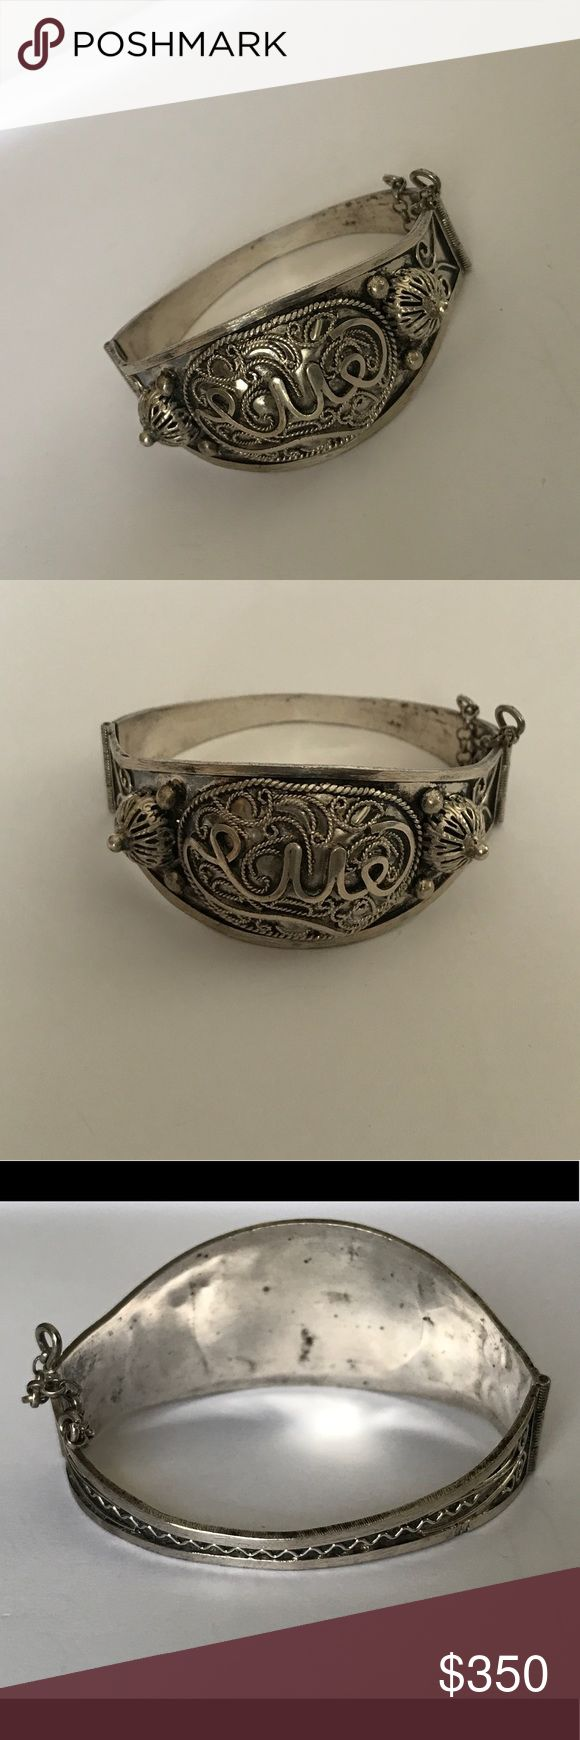 "EXTREMELY OLD Child Bangle Bracelet Set in sterling silver. It's circumference measures 2"" when closed. It opens on a hinge. It has designer hallmarks unknown to me as shown in photo. It's truly rare and unique Vintage Jewelry Bracelets"